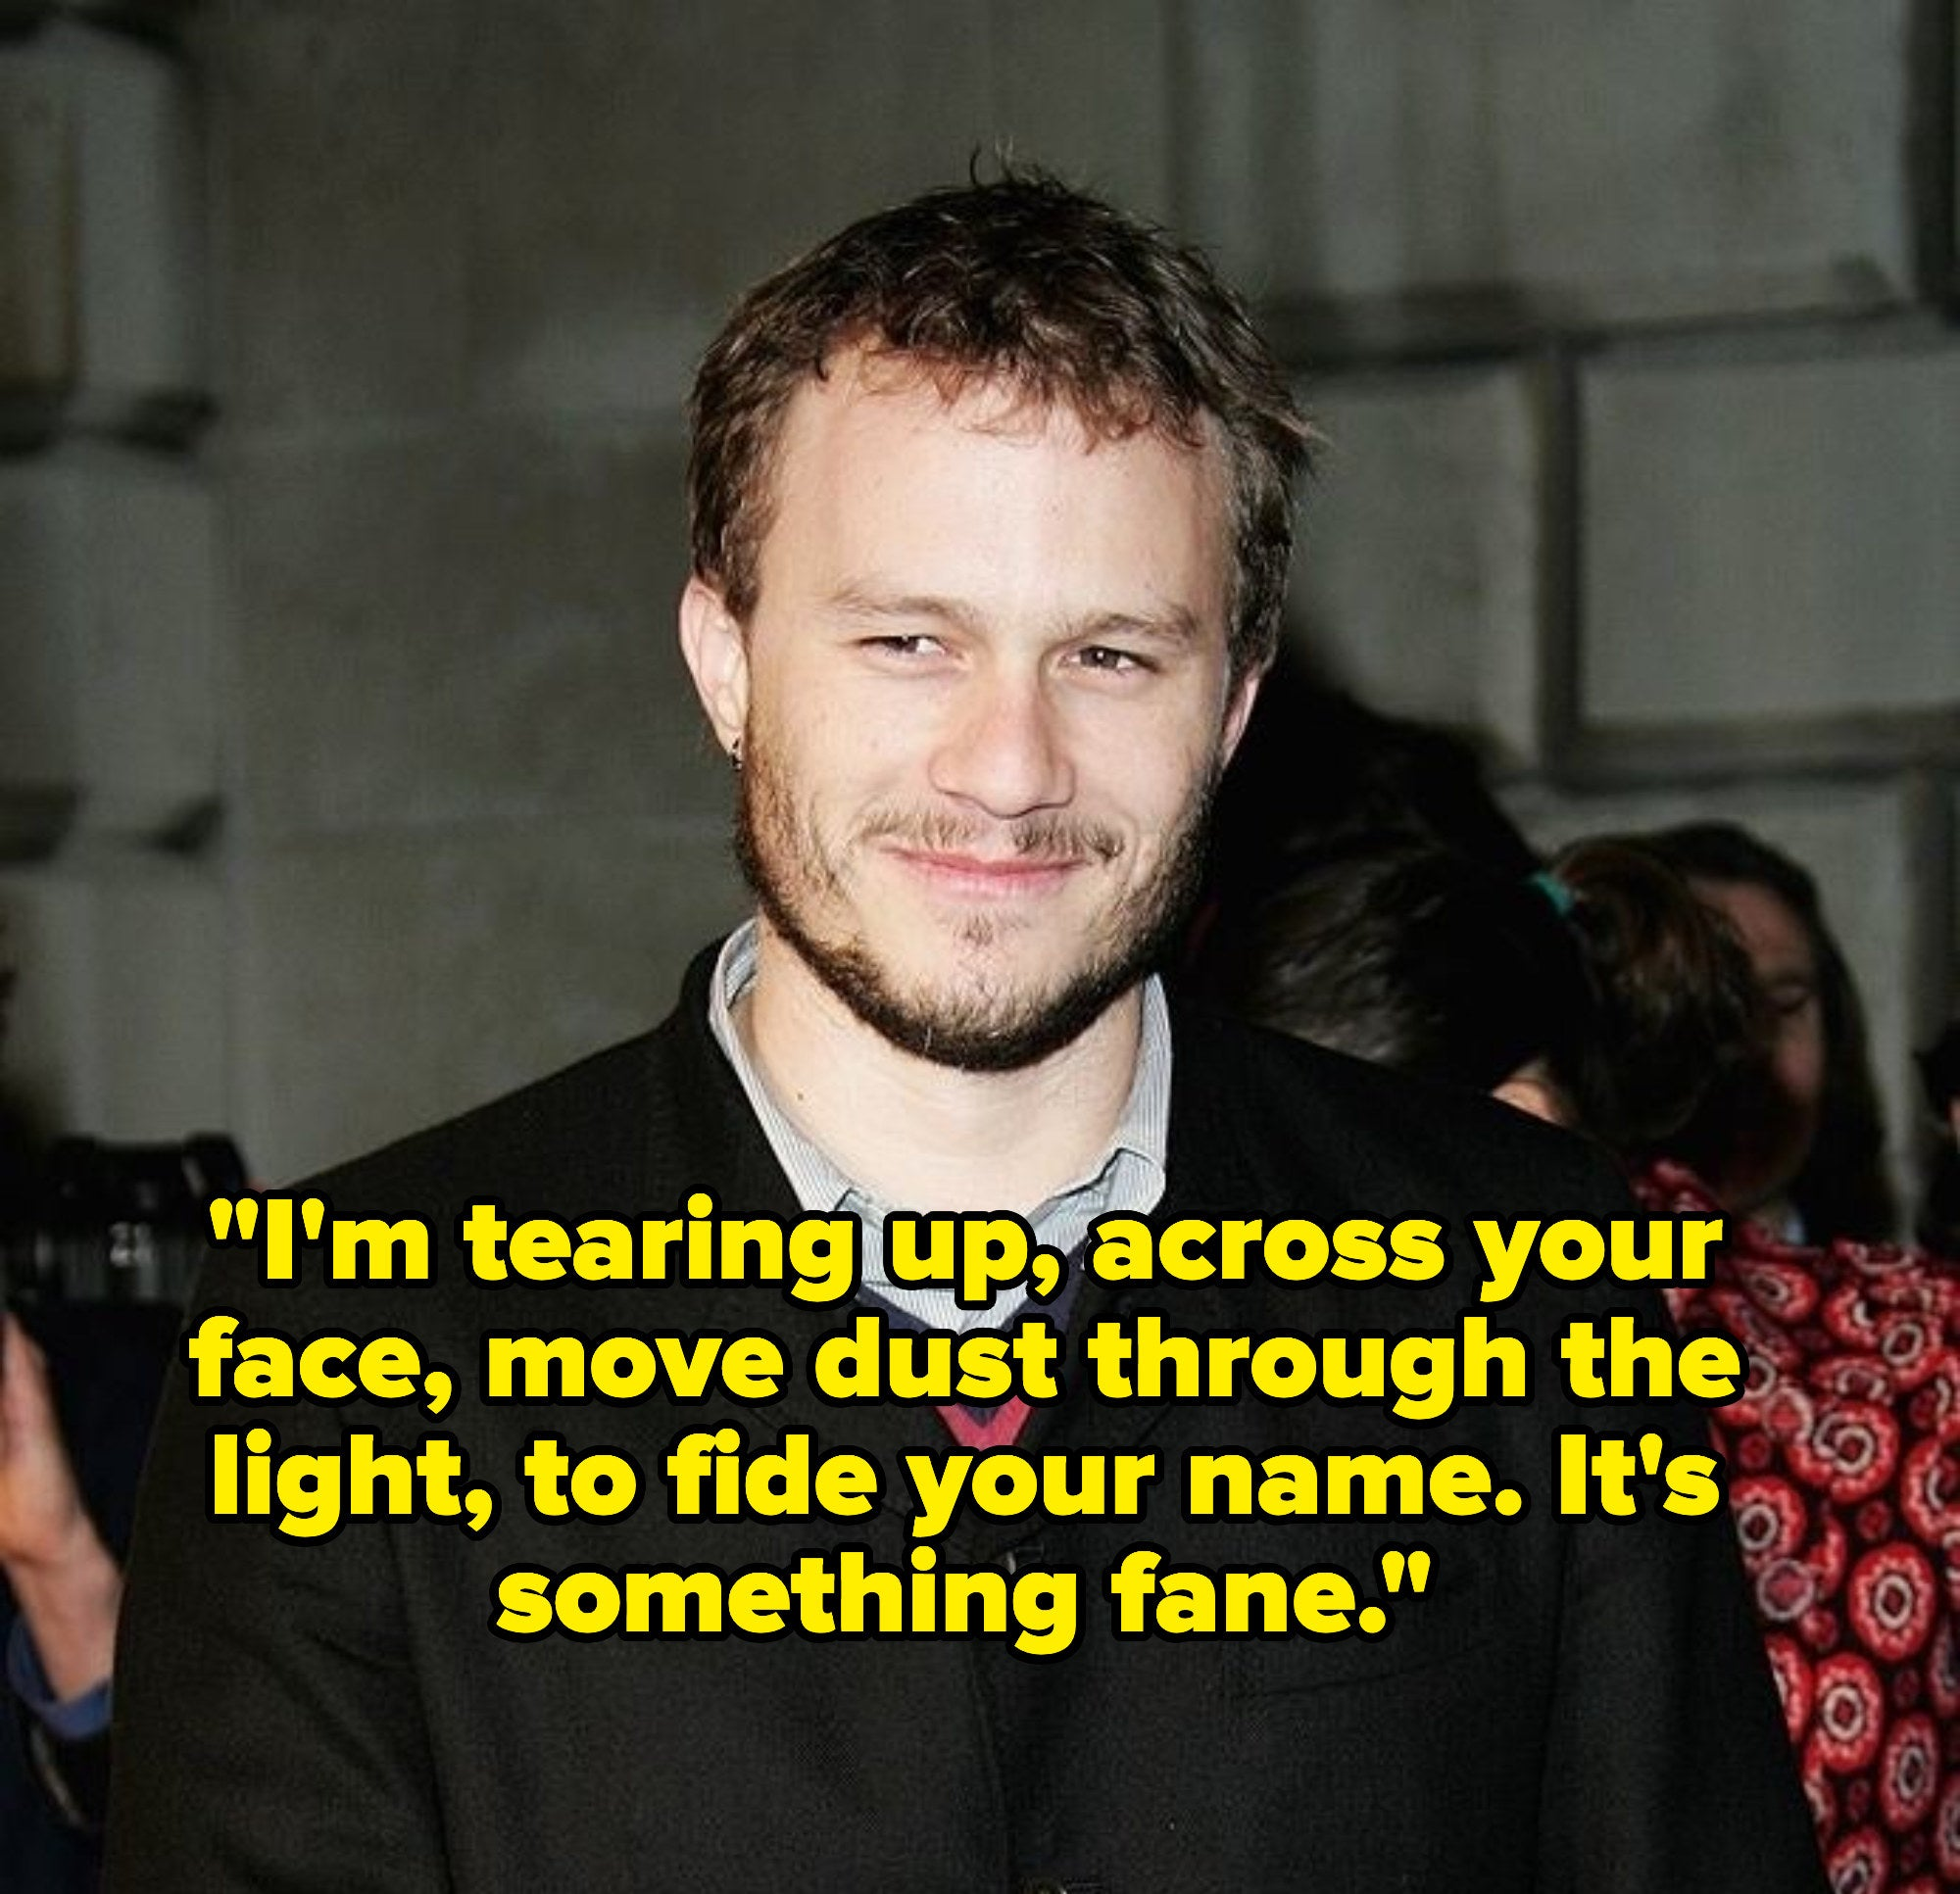 """Heath Ledger smiling, captioned with lyrics """"I'm tearing up, across your face, move dust through the light, to fide your name. It's something fane."""""""